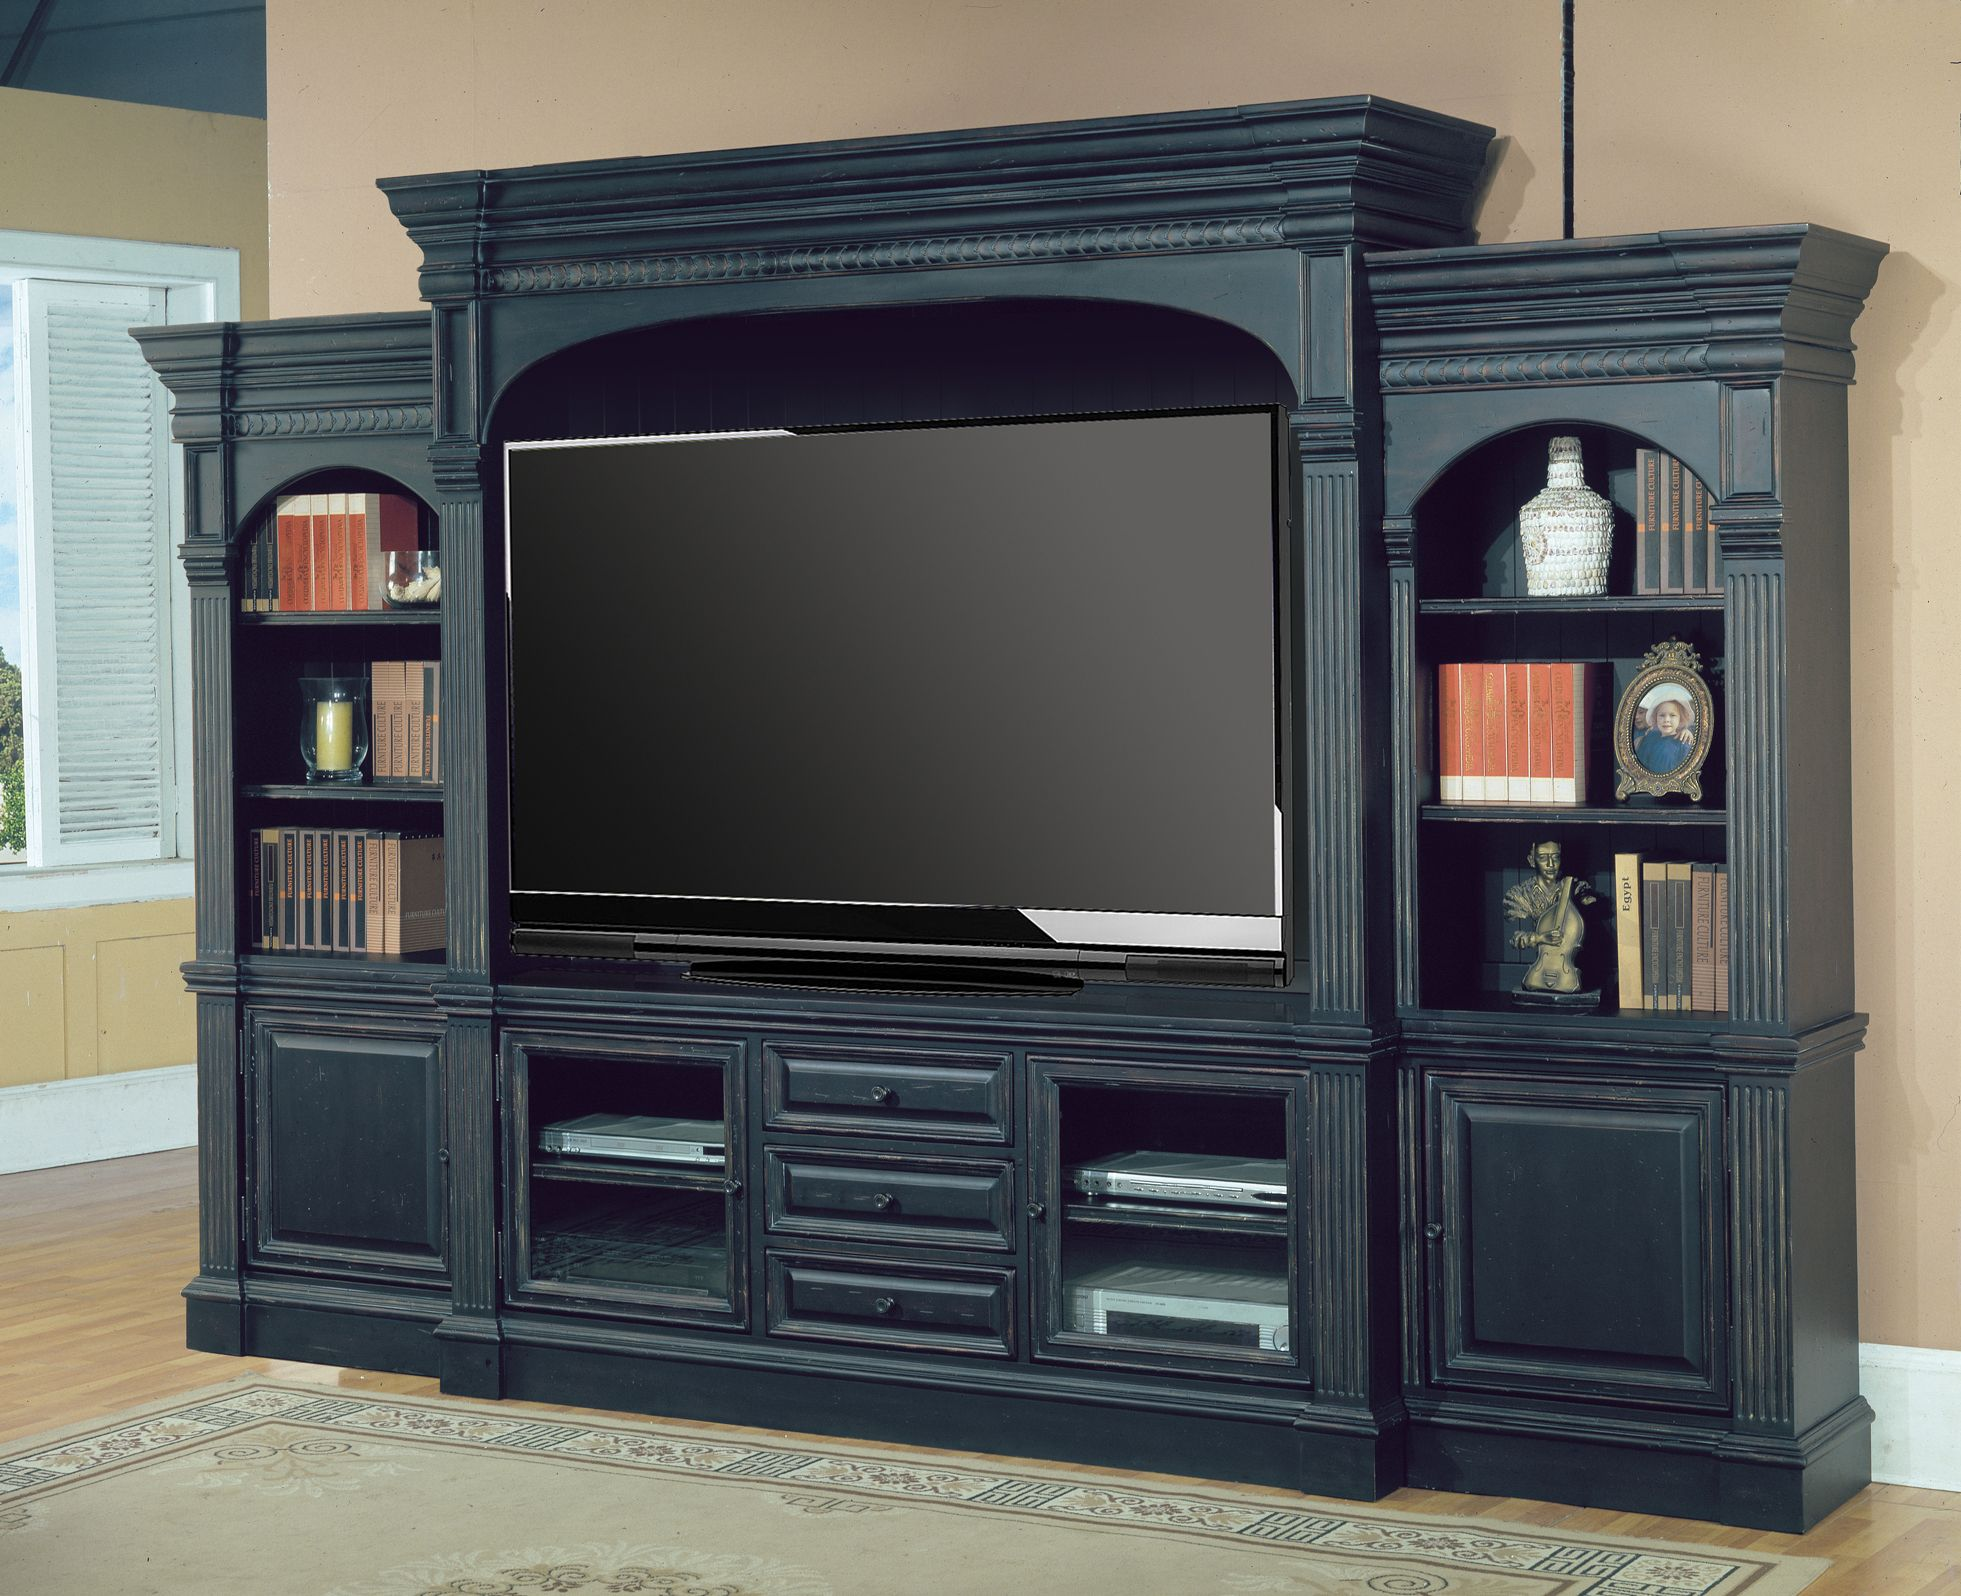 Captivating This Vintage Style Black Wall Unit Is Sure To Impress! Parker House Venezia  Entertainment Center Wall Unit At Sheelyu0027s Furniture U0026 Appliance